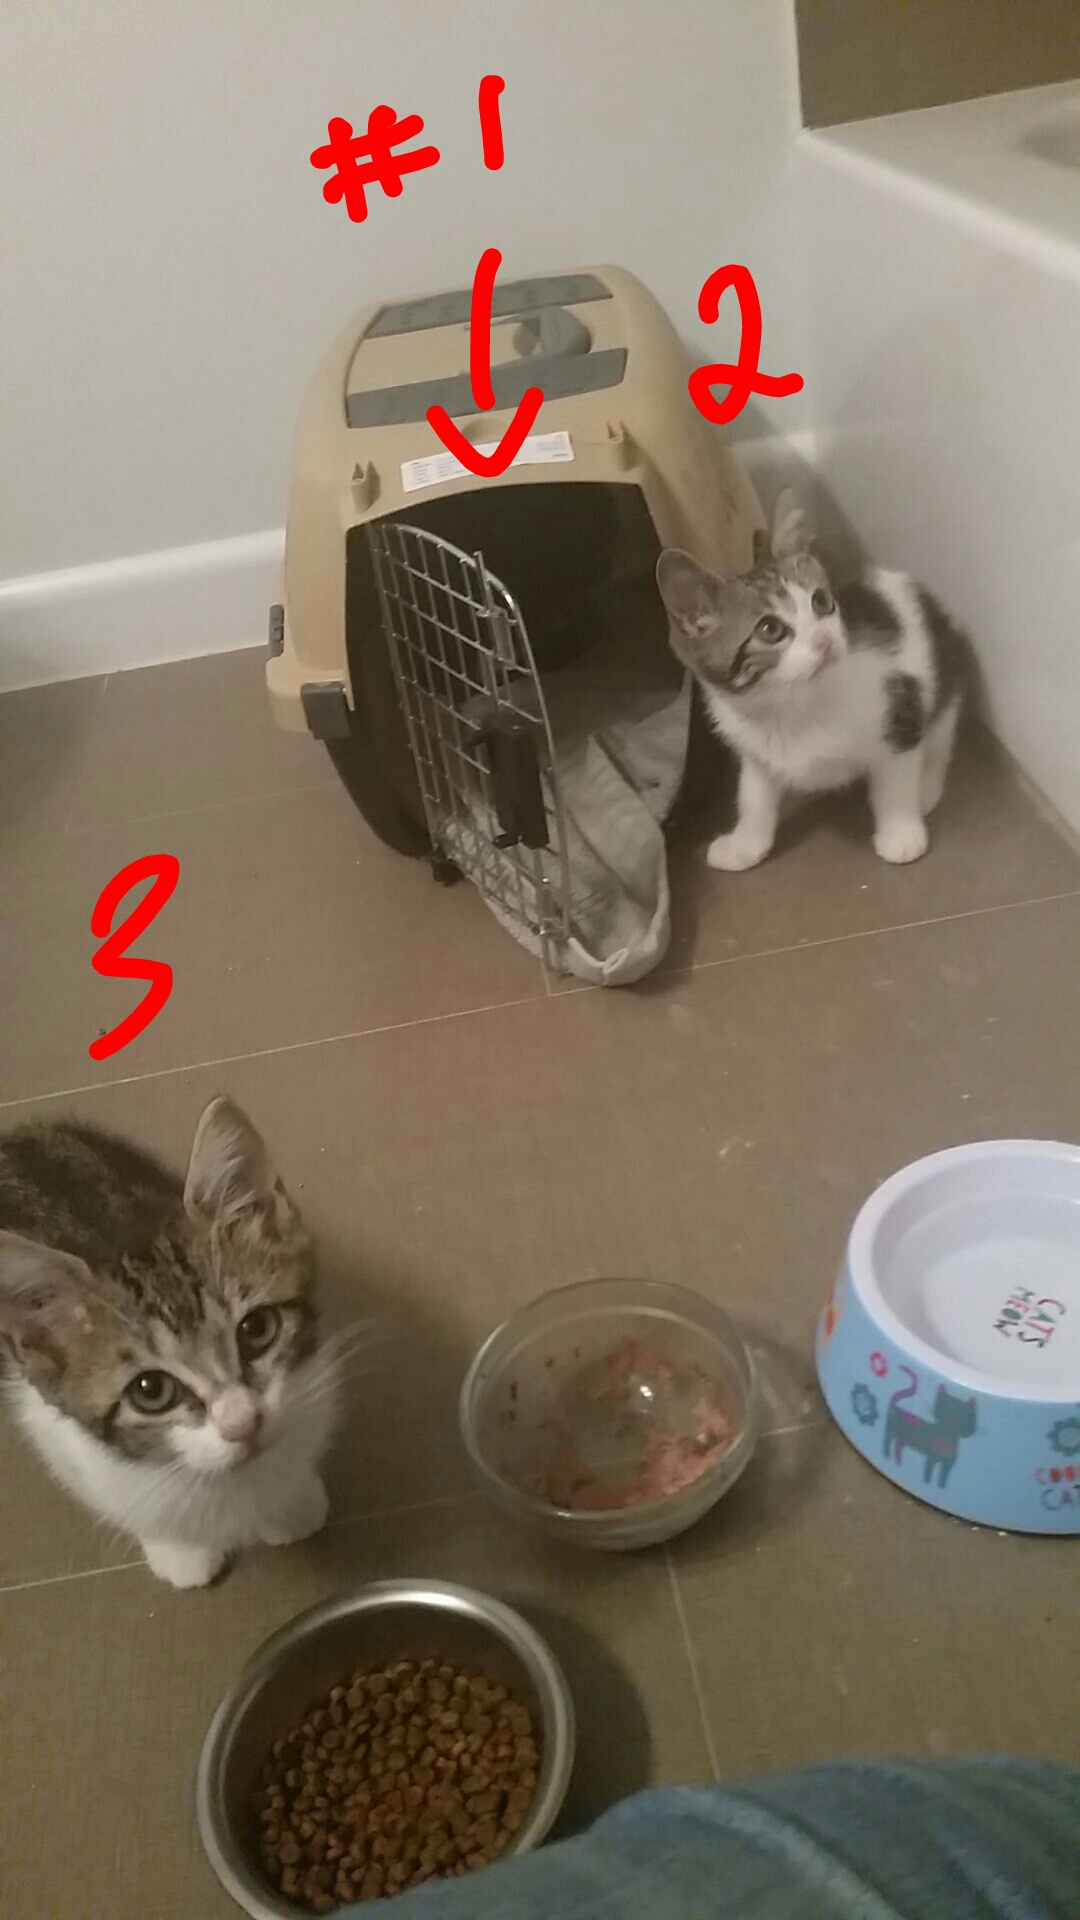 socializing feral kittens is feeling like there is no hope is